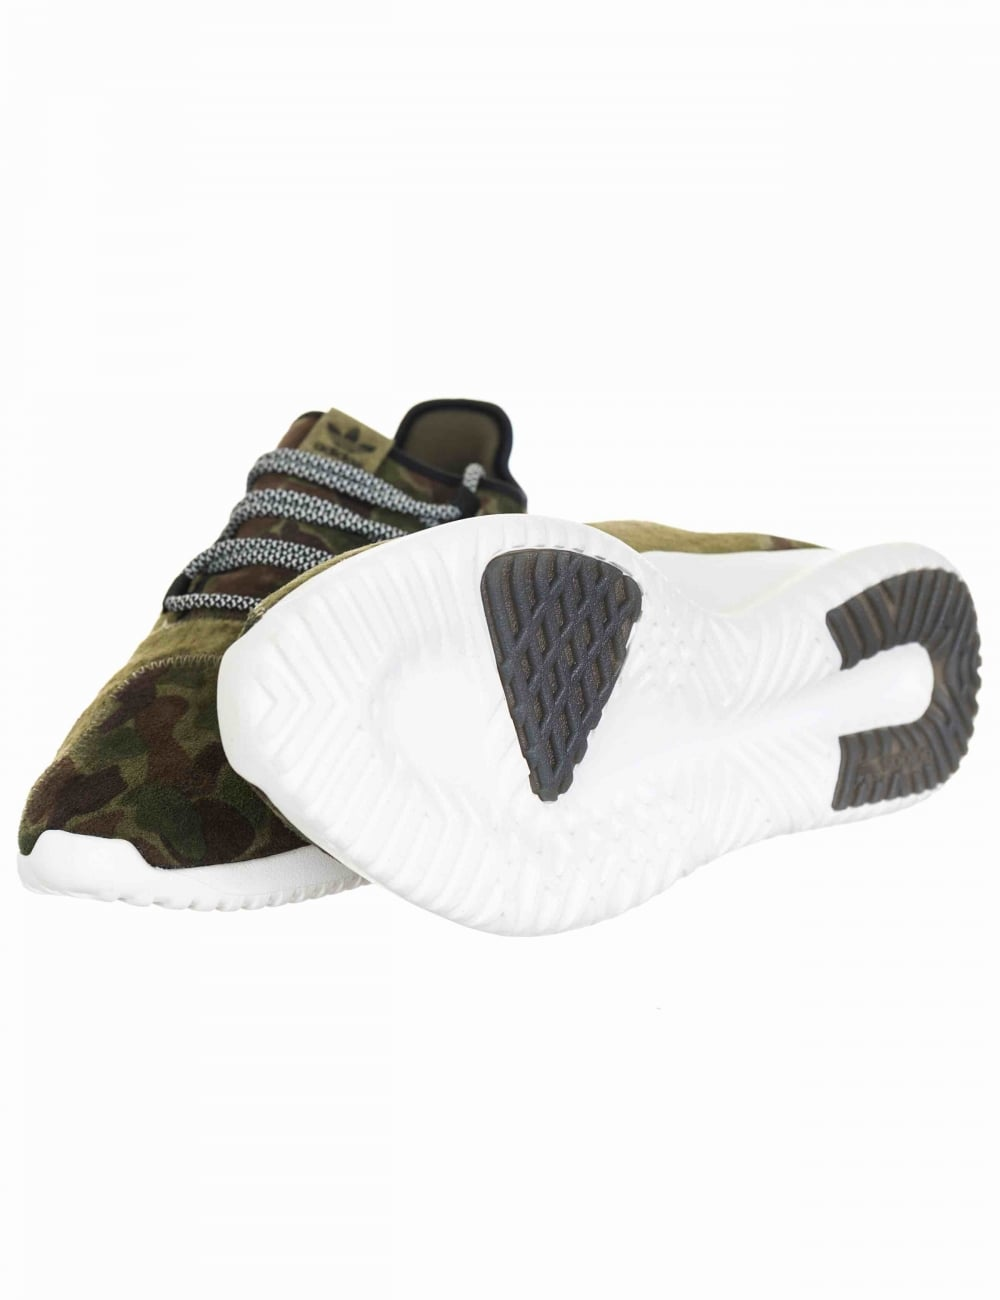 timeless design 1a9d8 33543 Tubular Shadow Shoes - Olive Cargo/Vintage White